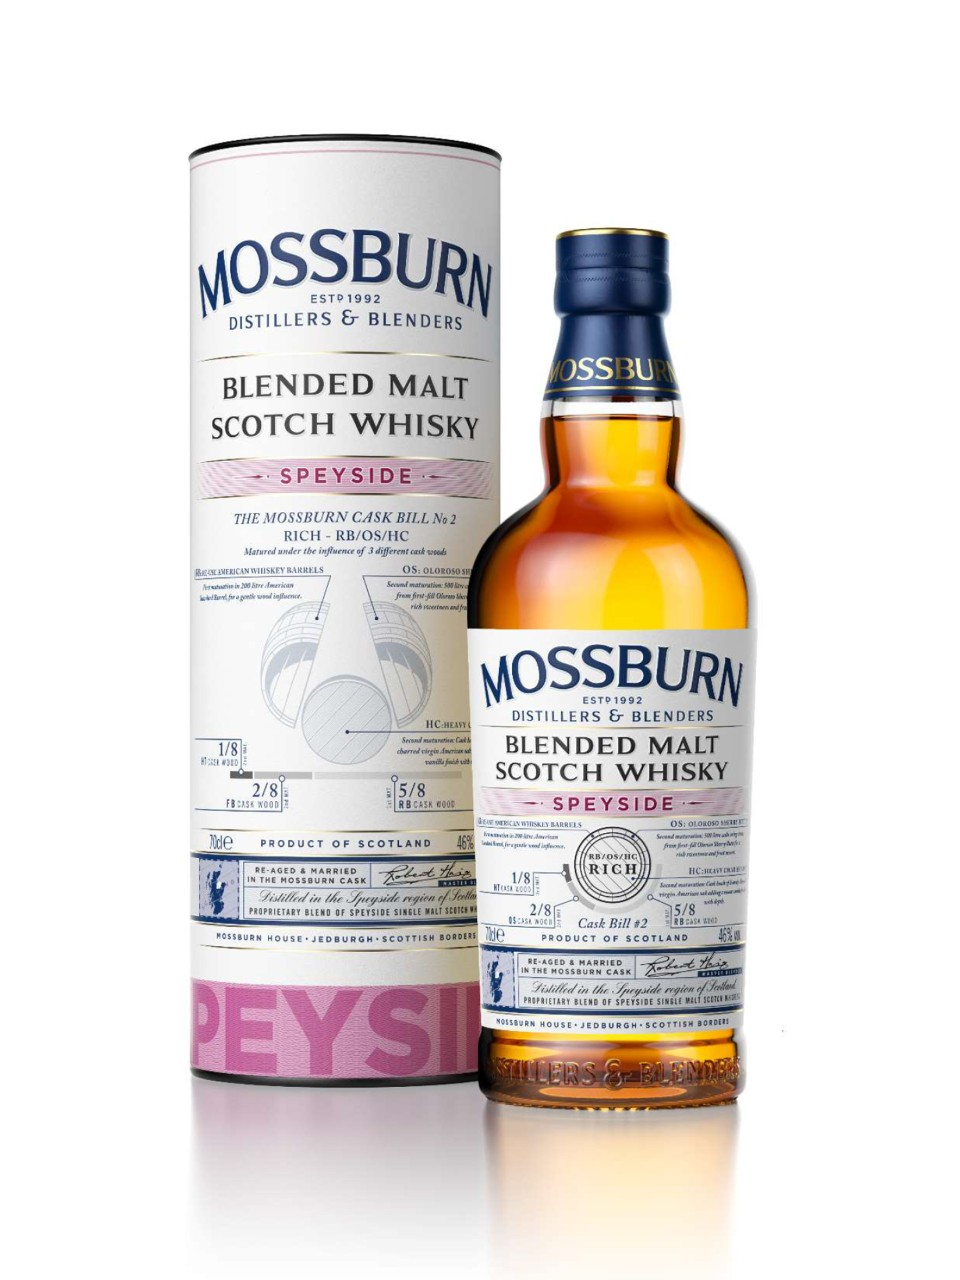 Mossburn Signature Cask Speyside Scotch Whisky from LCBO